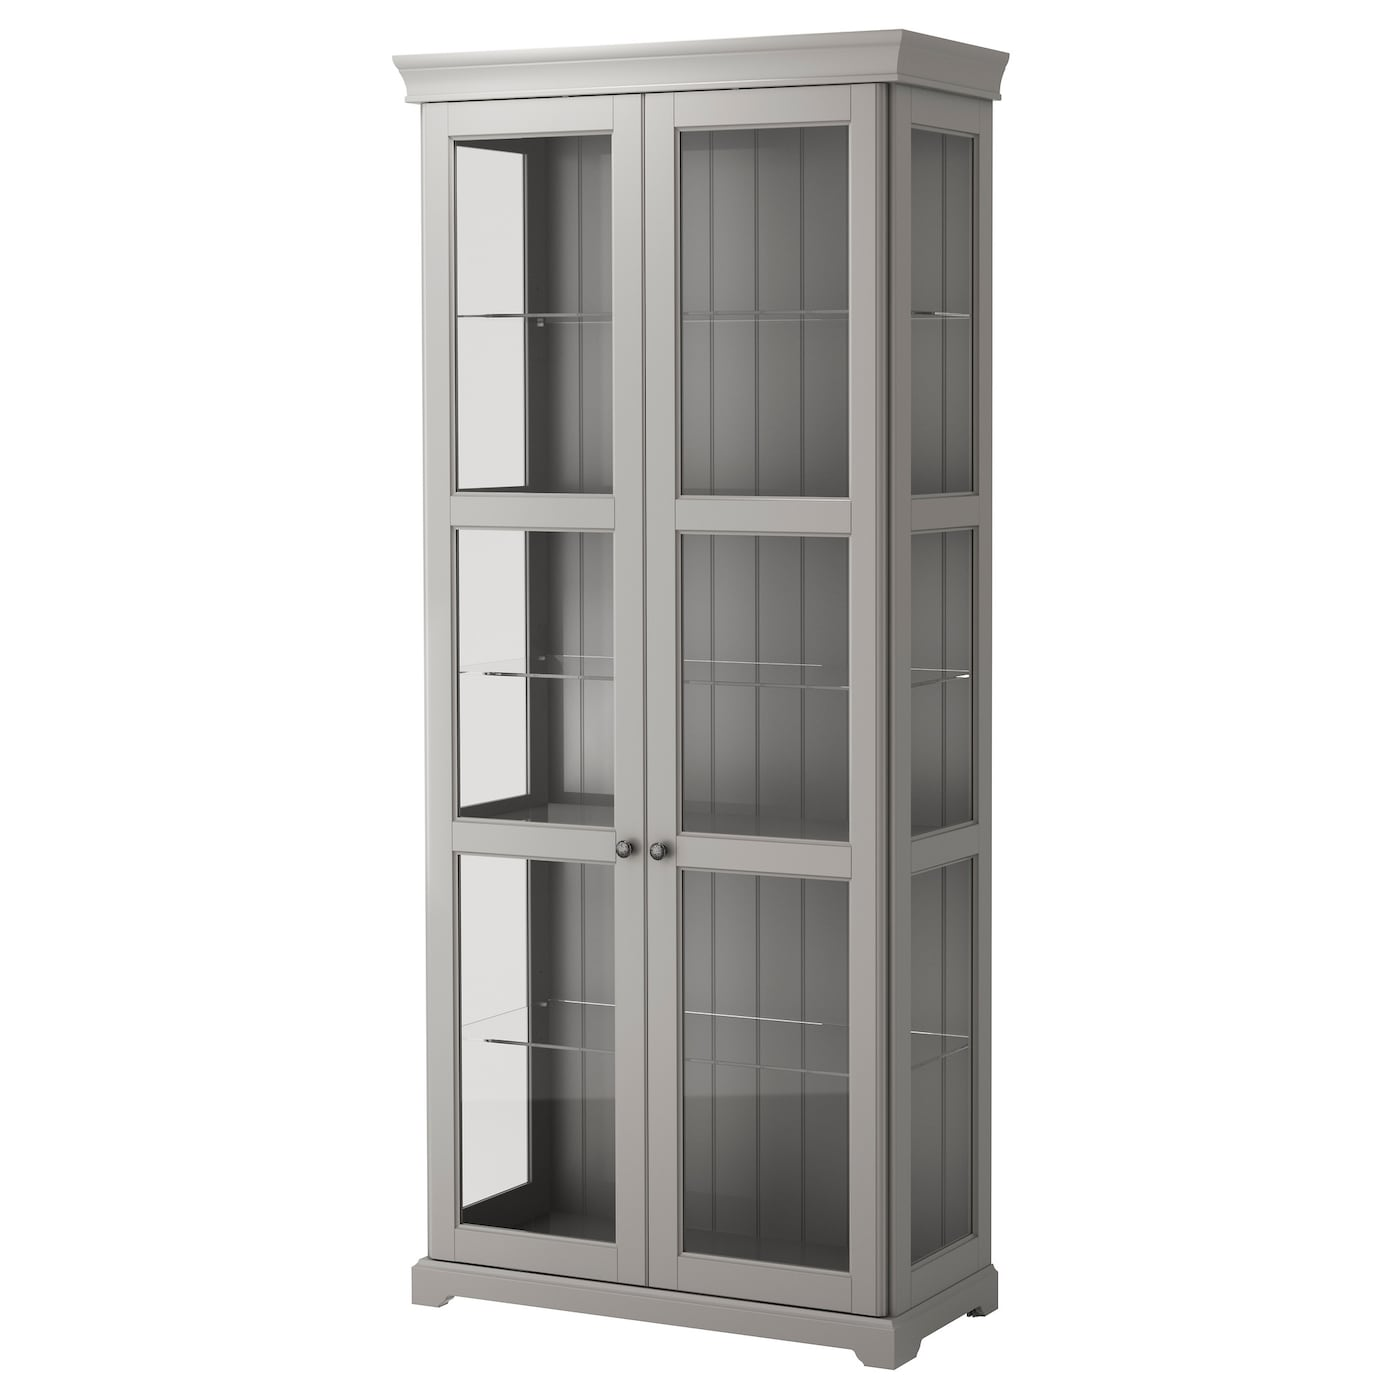 Liatorp glass door cabinet grey 96x214 cm ikea - Ikea glass cabinets ...